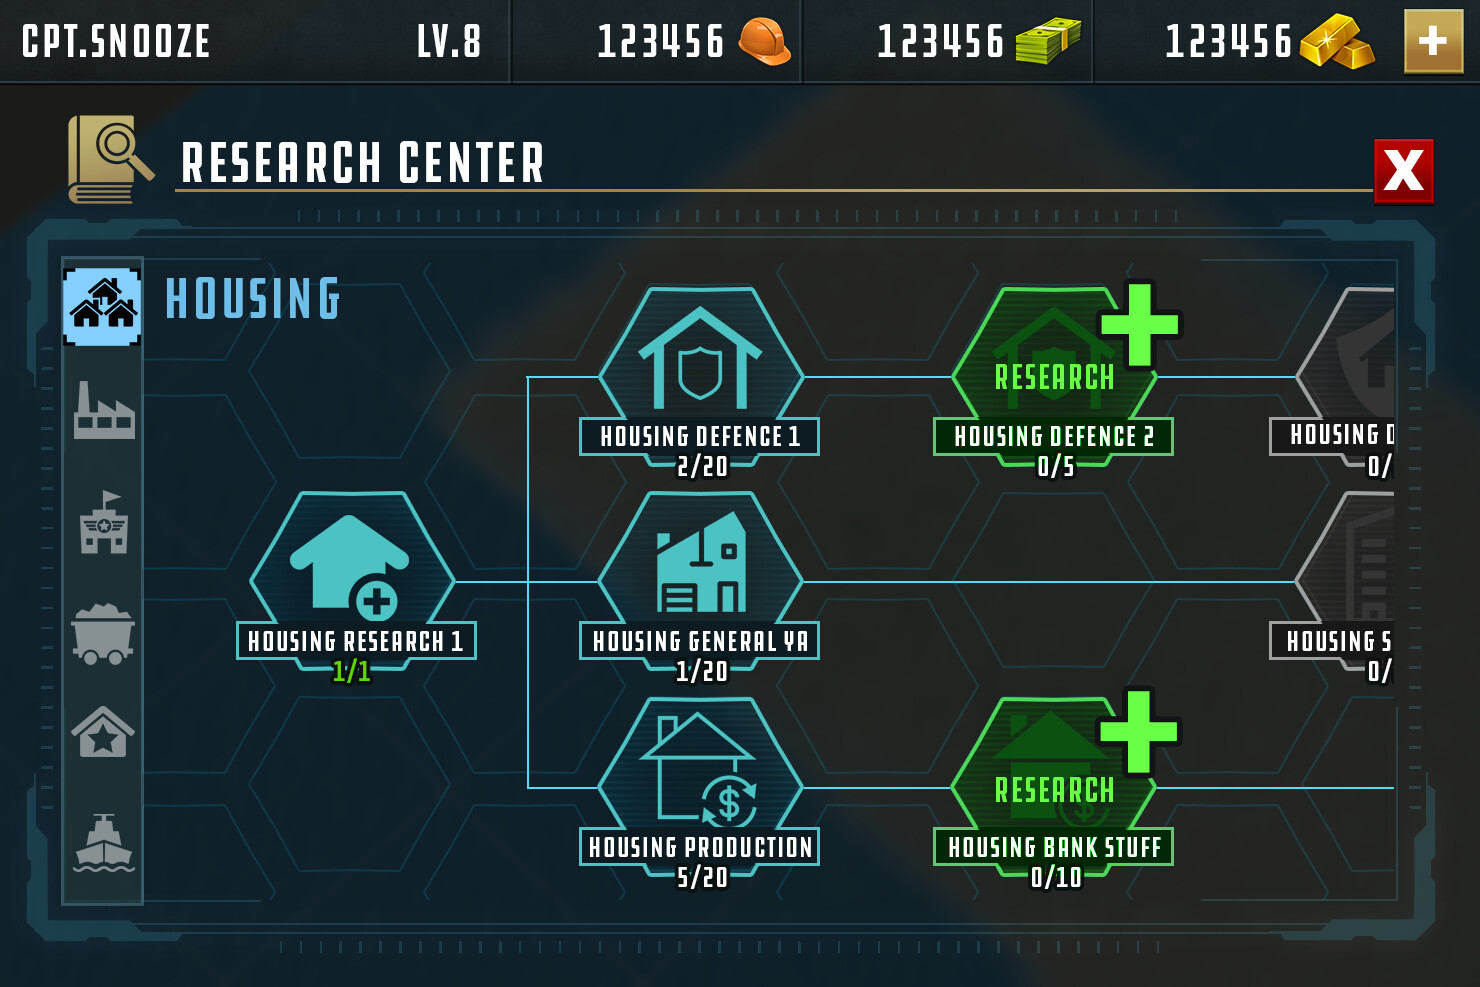 Research center UI concept. Player level determined unlockable skills among other things.